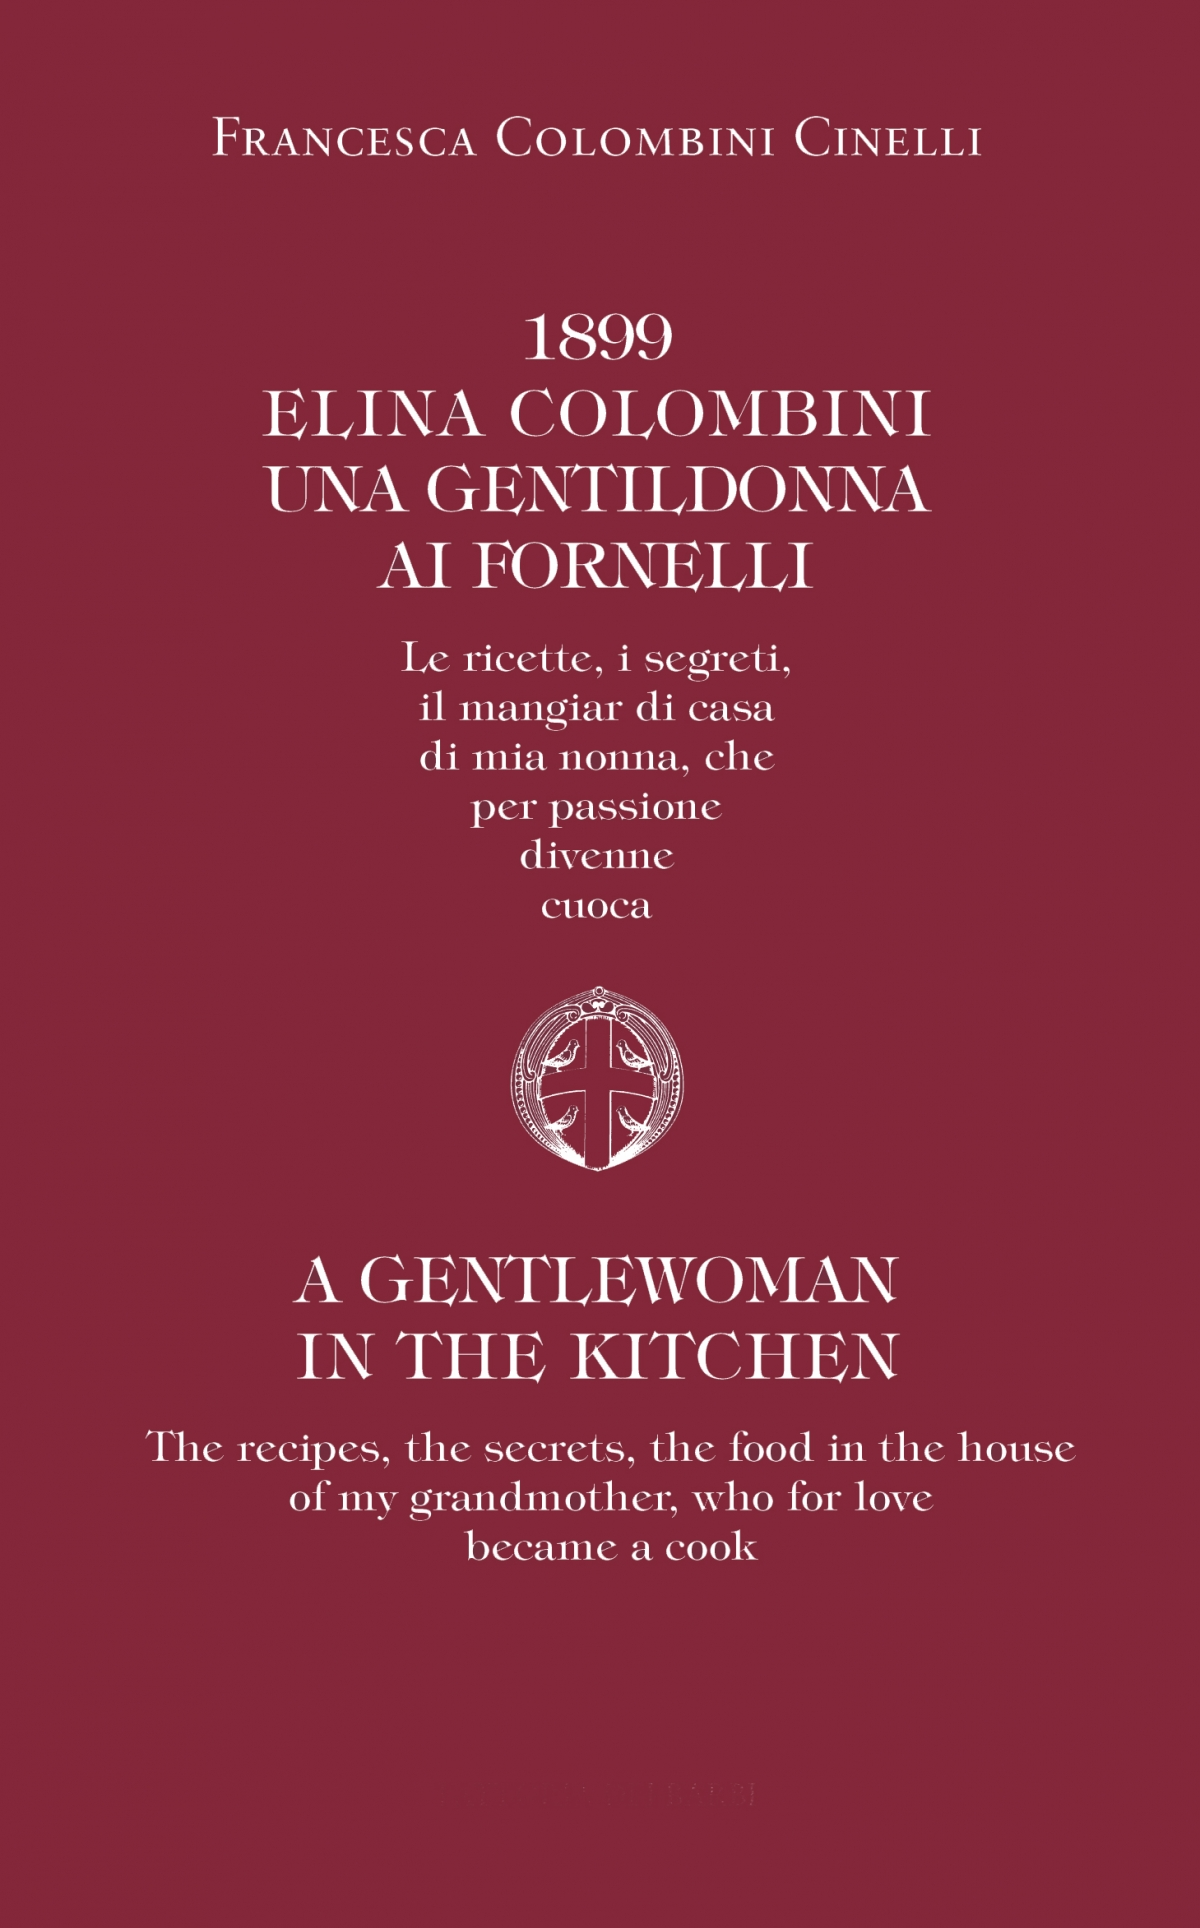 1899. Elina Colombini, una gentildonna ai fornelli / A gentlewoman in the kitchen